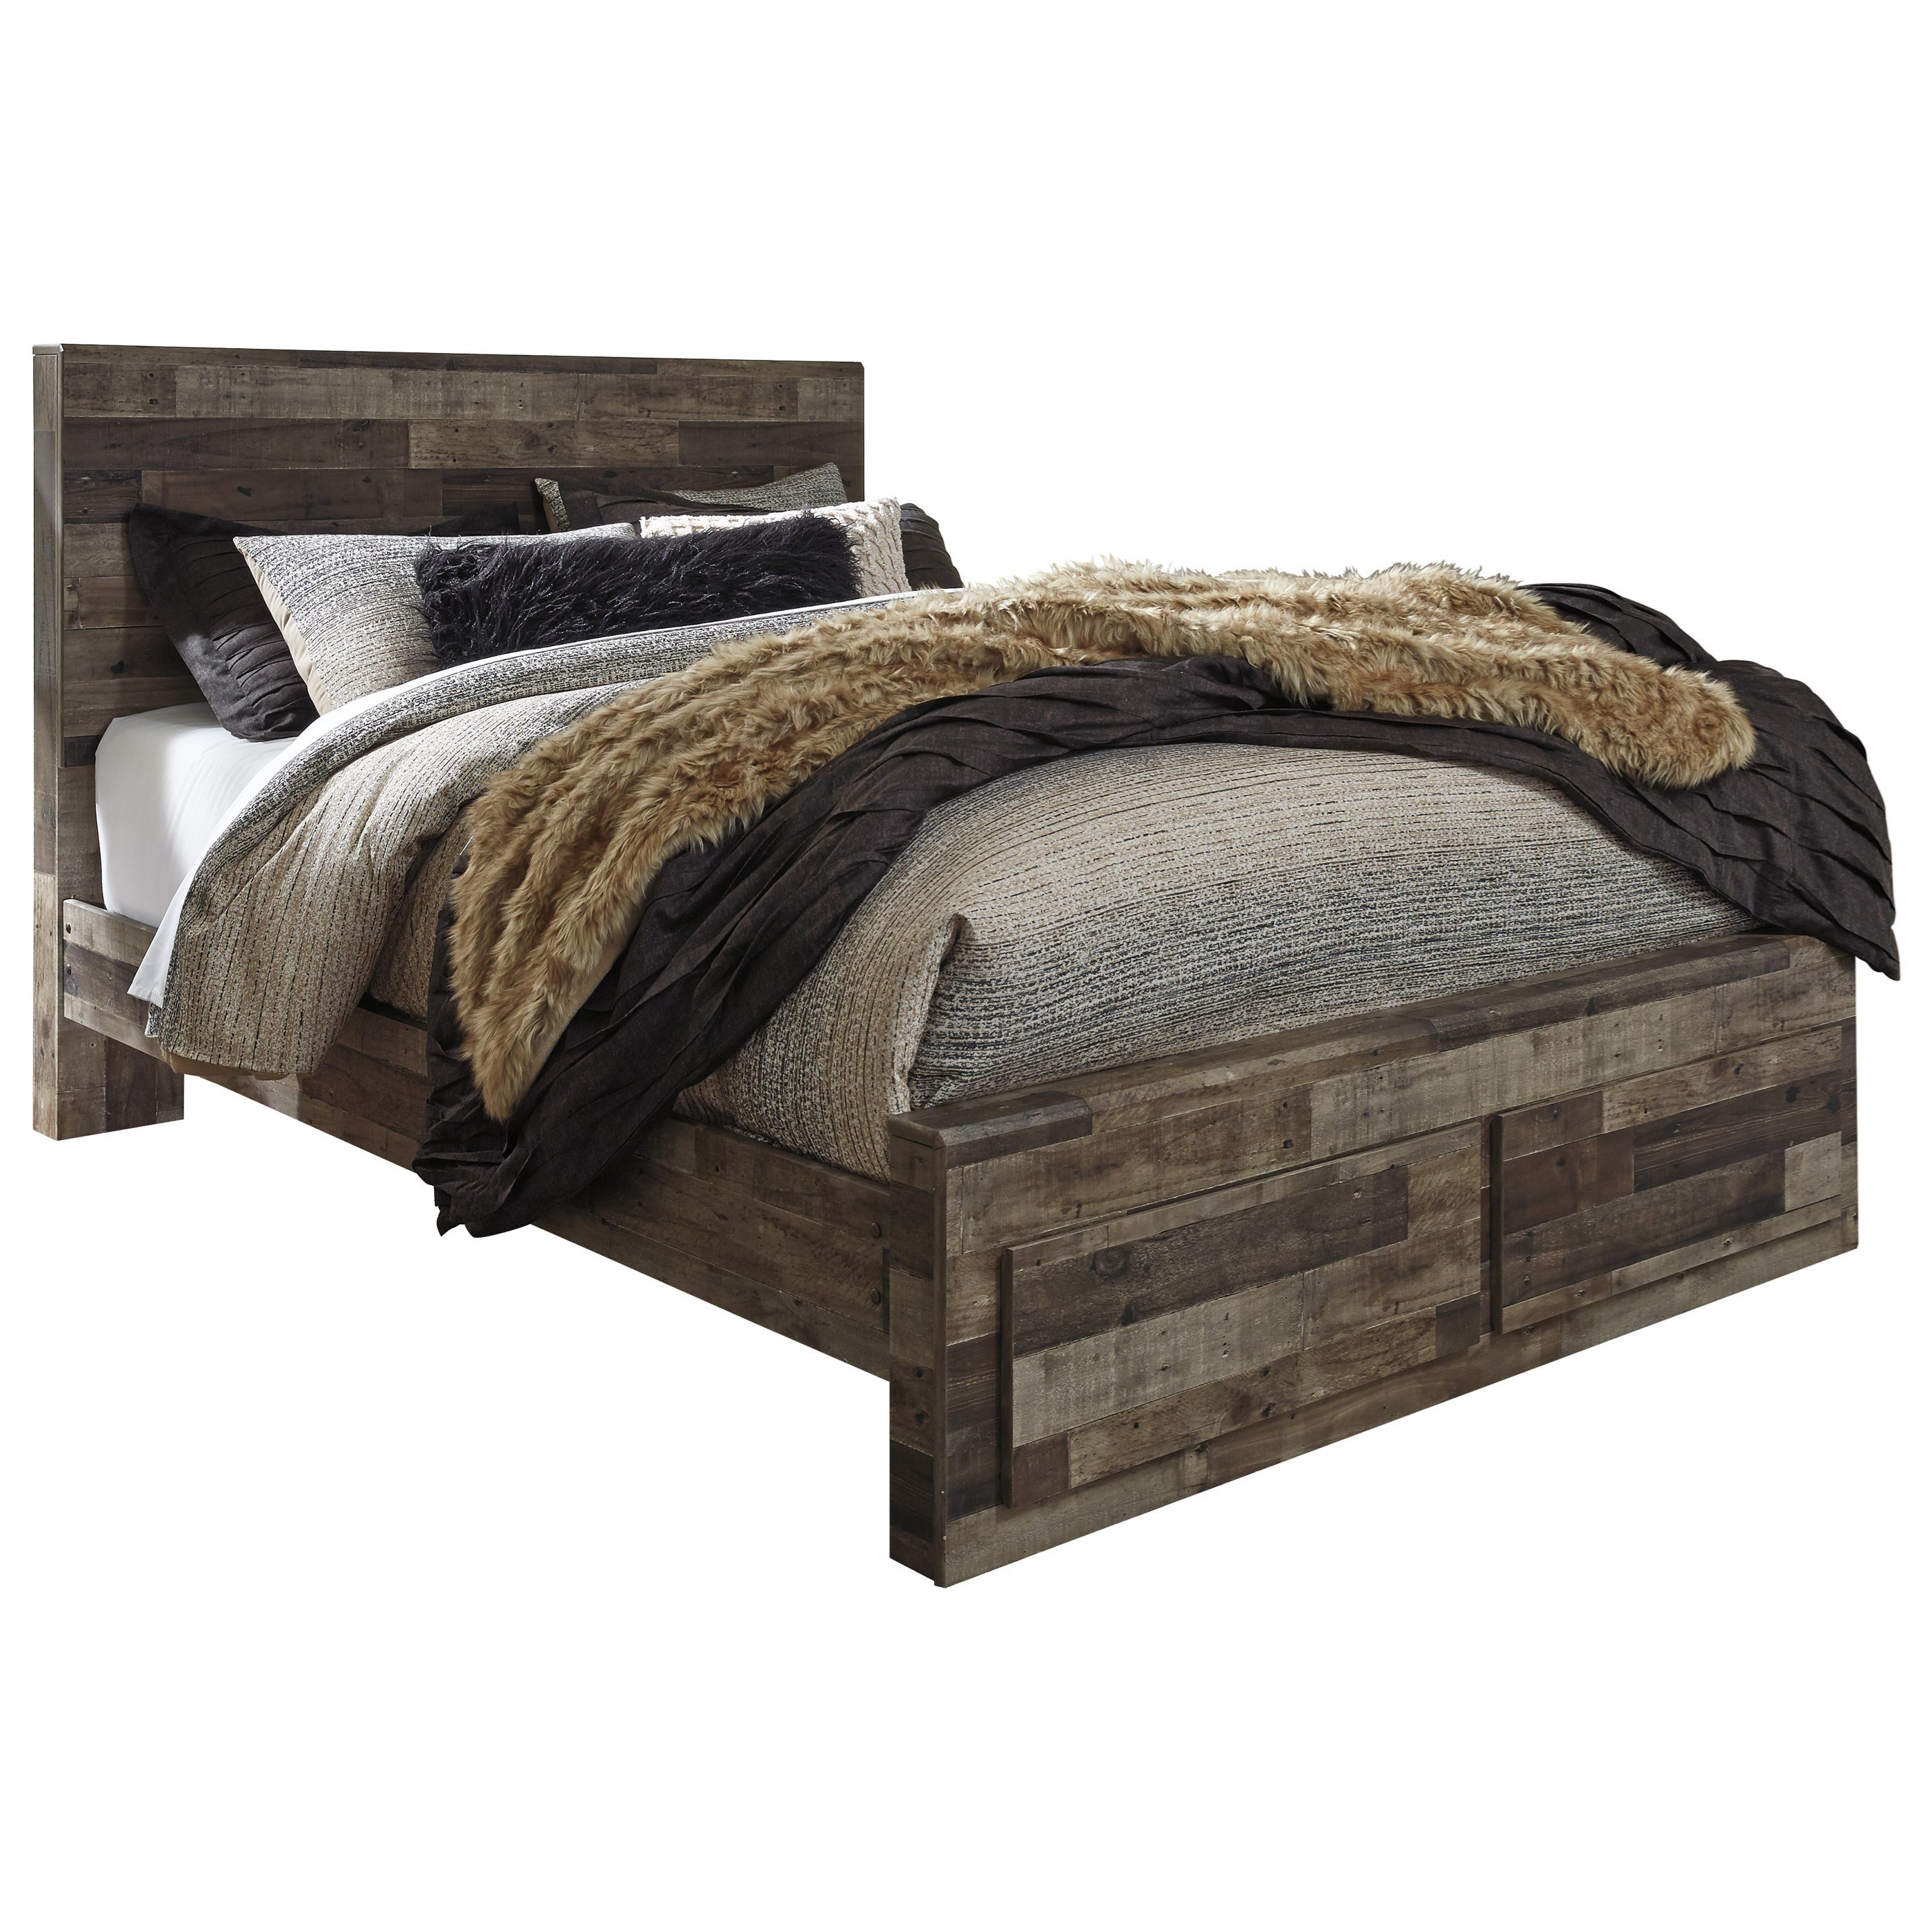 modern storage beds benchcraft derekson rustic modern storage bed with 2 12627